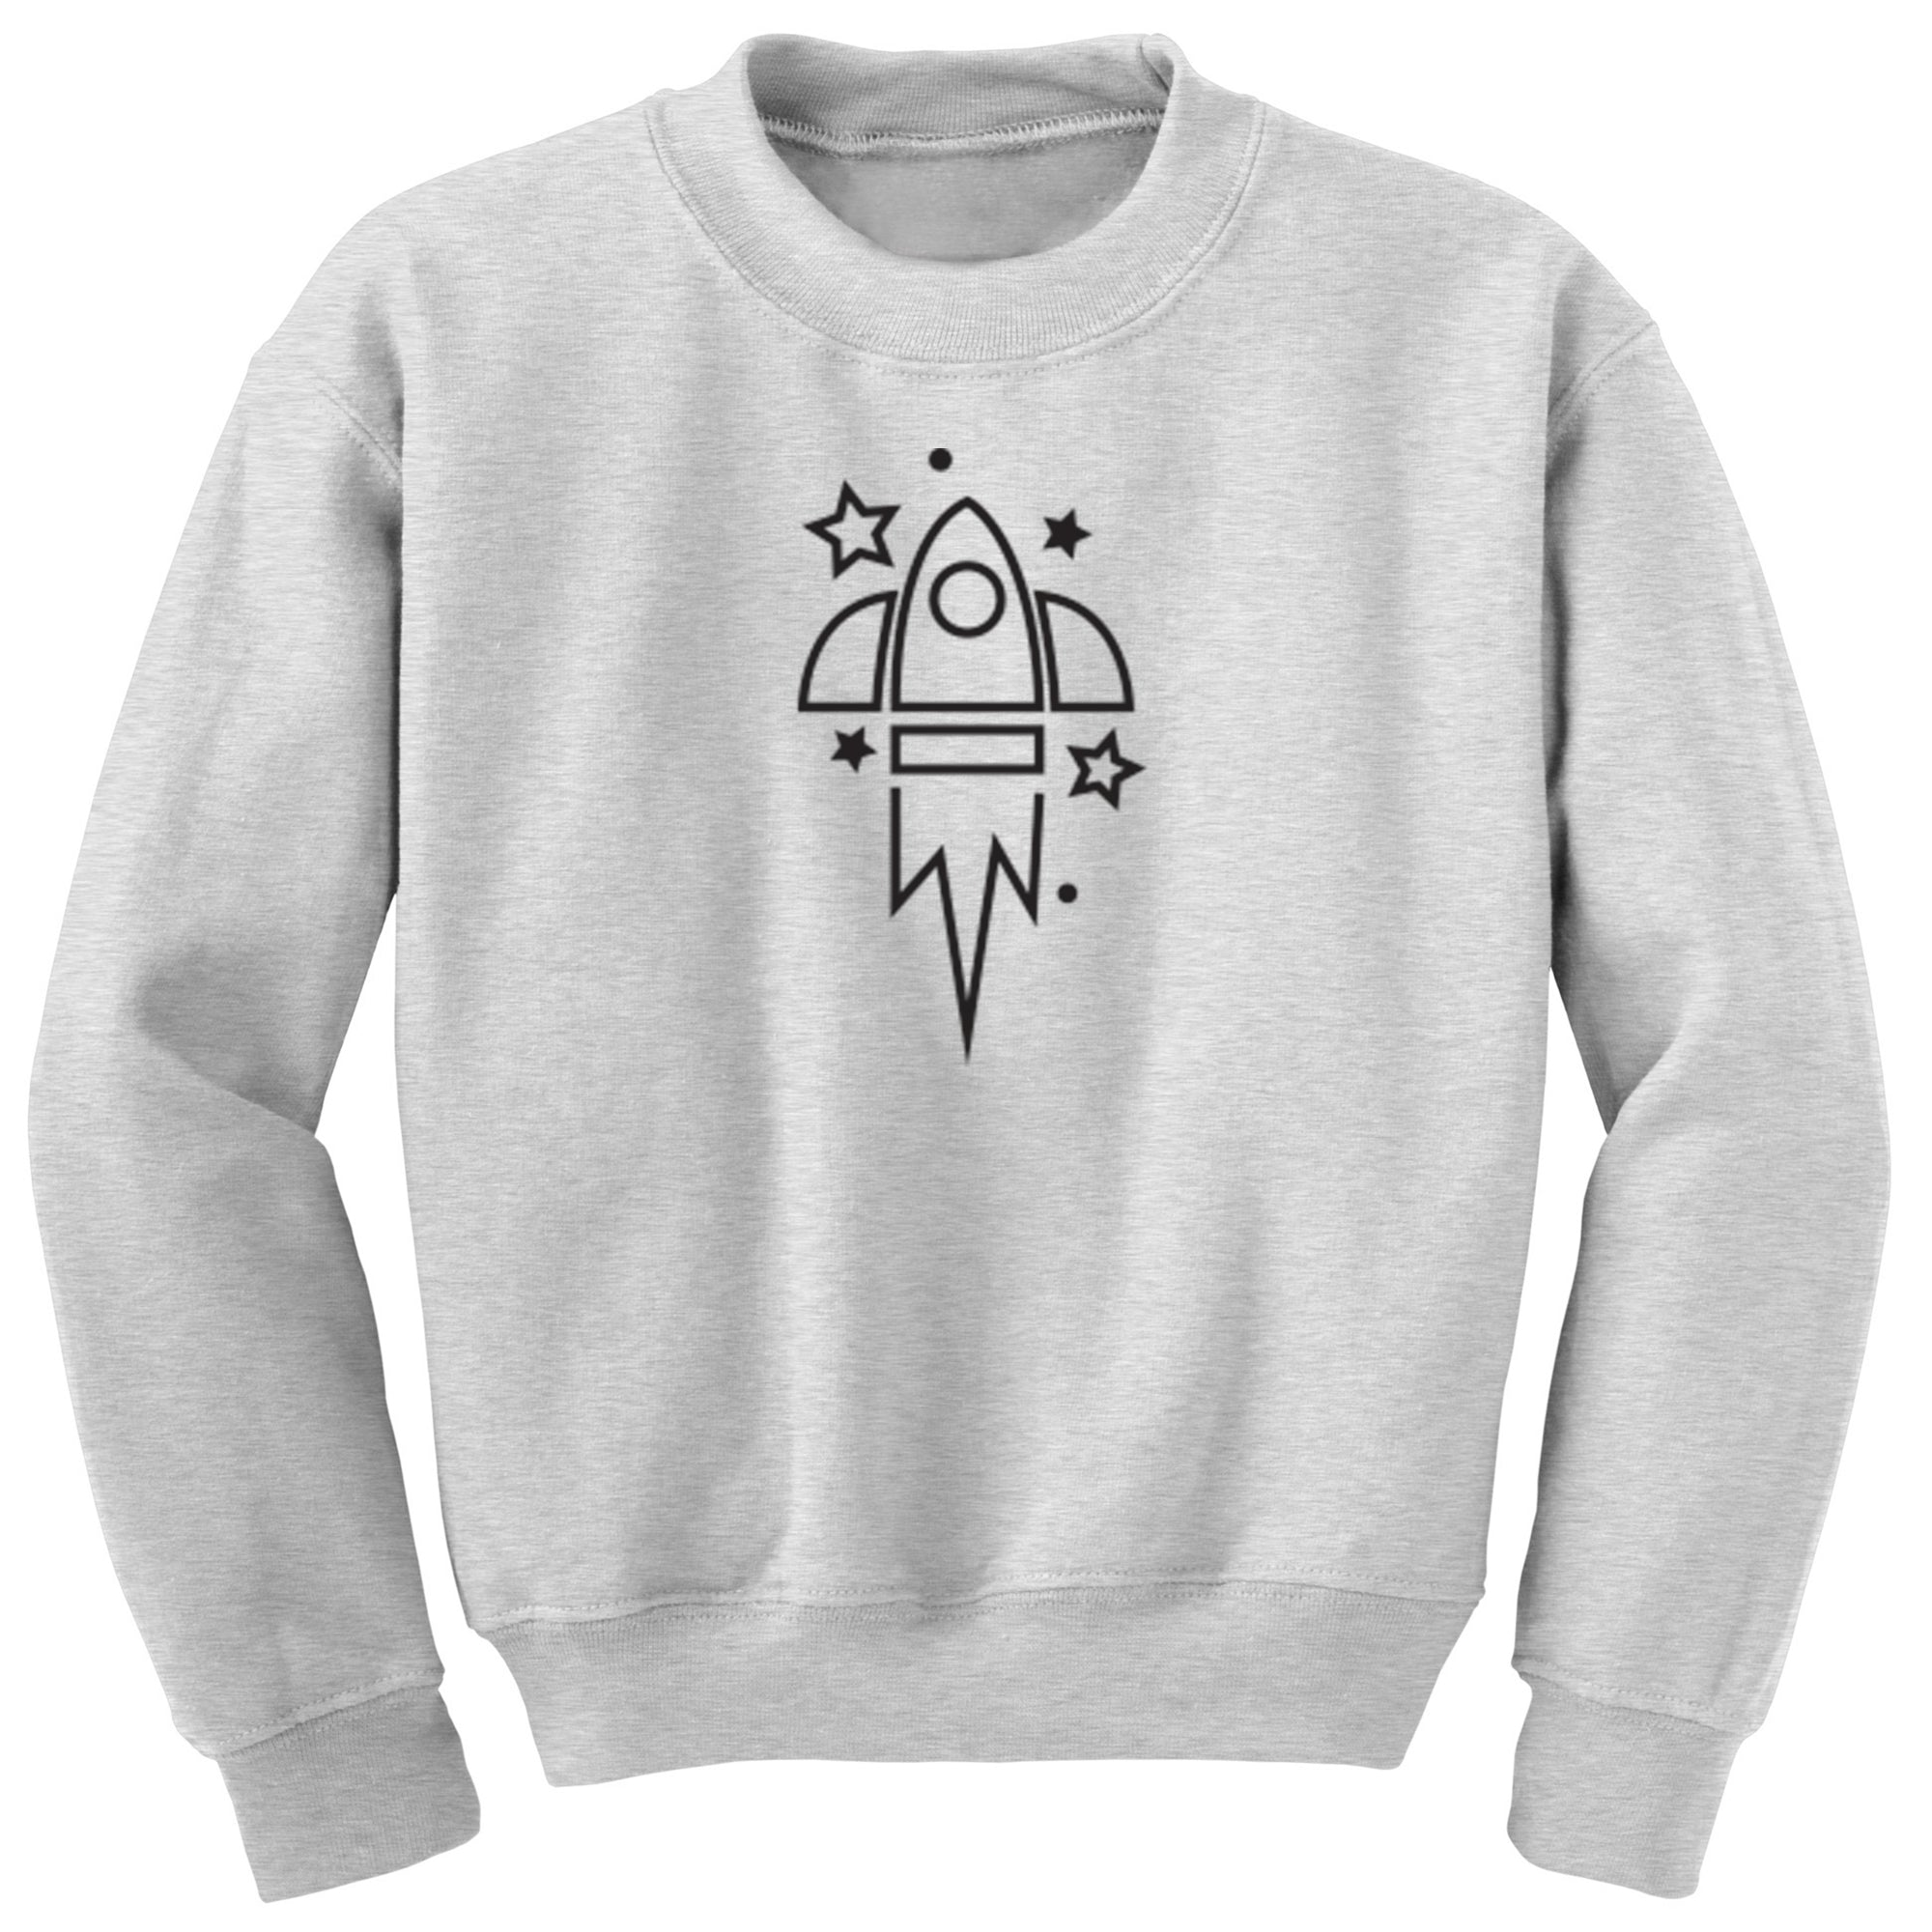 Rocket Ship Childrens Ages 3/4-12/14 Unisex Jumper S0361 - Illustrated Identity Ltd.